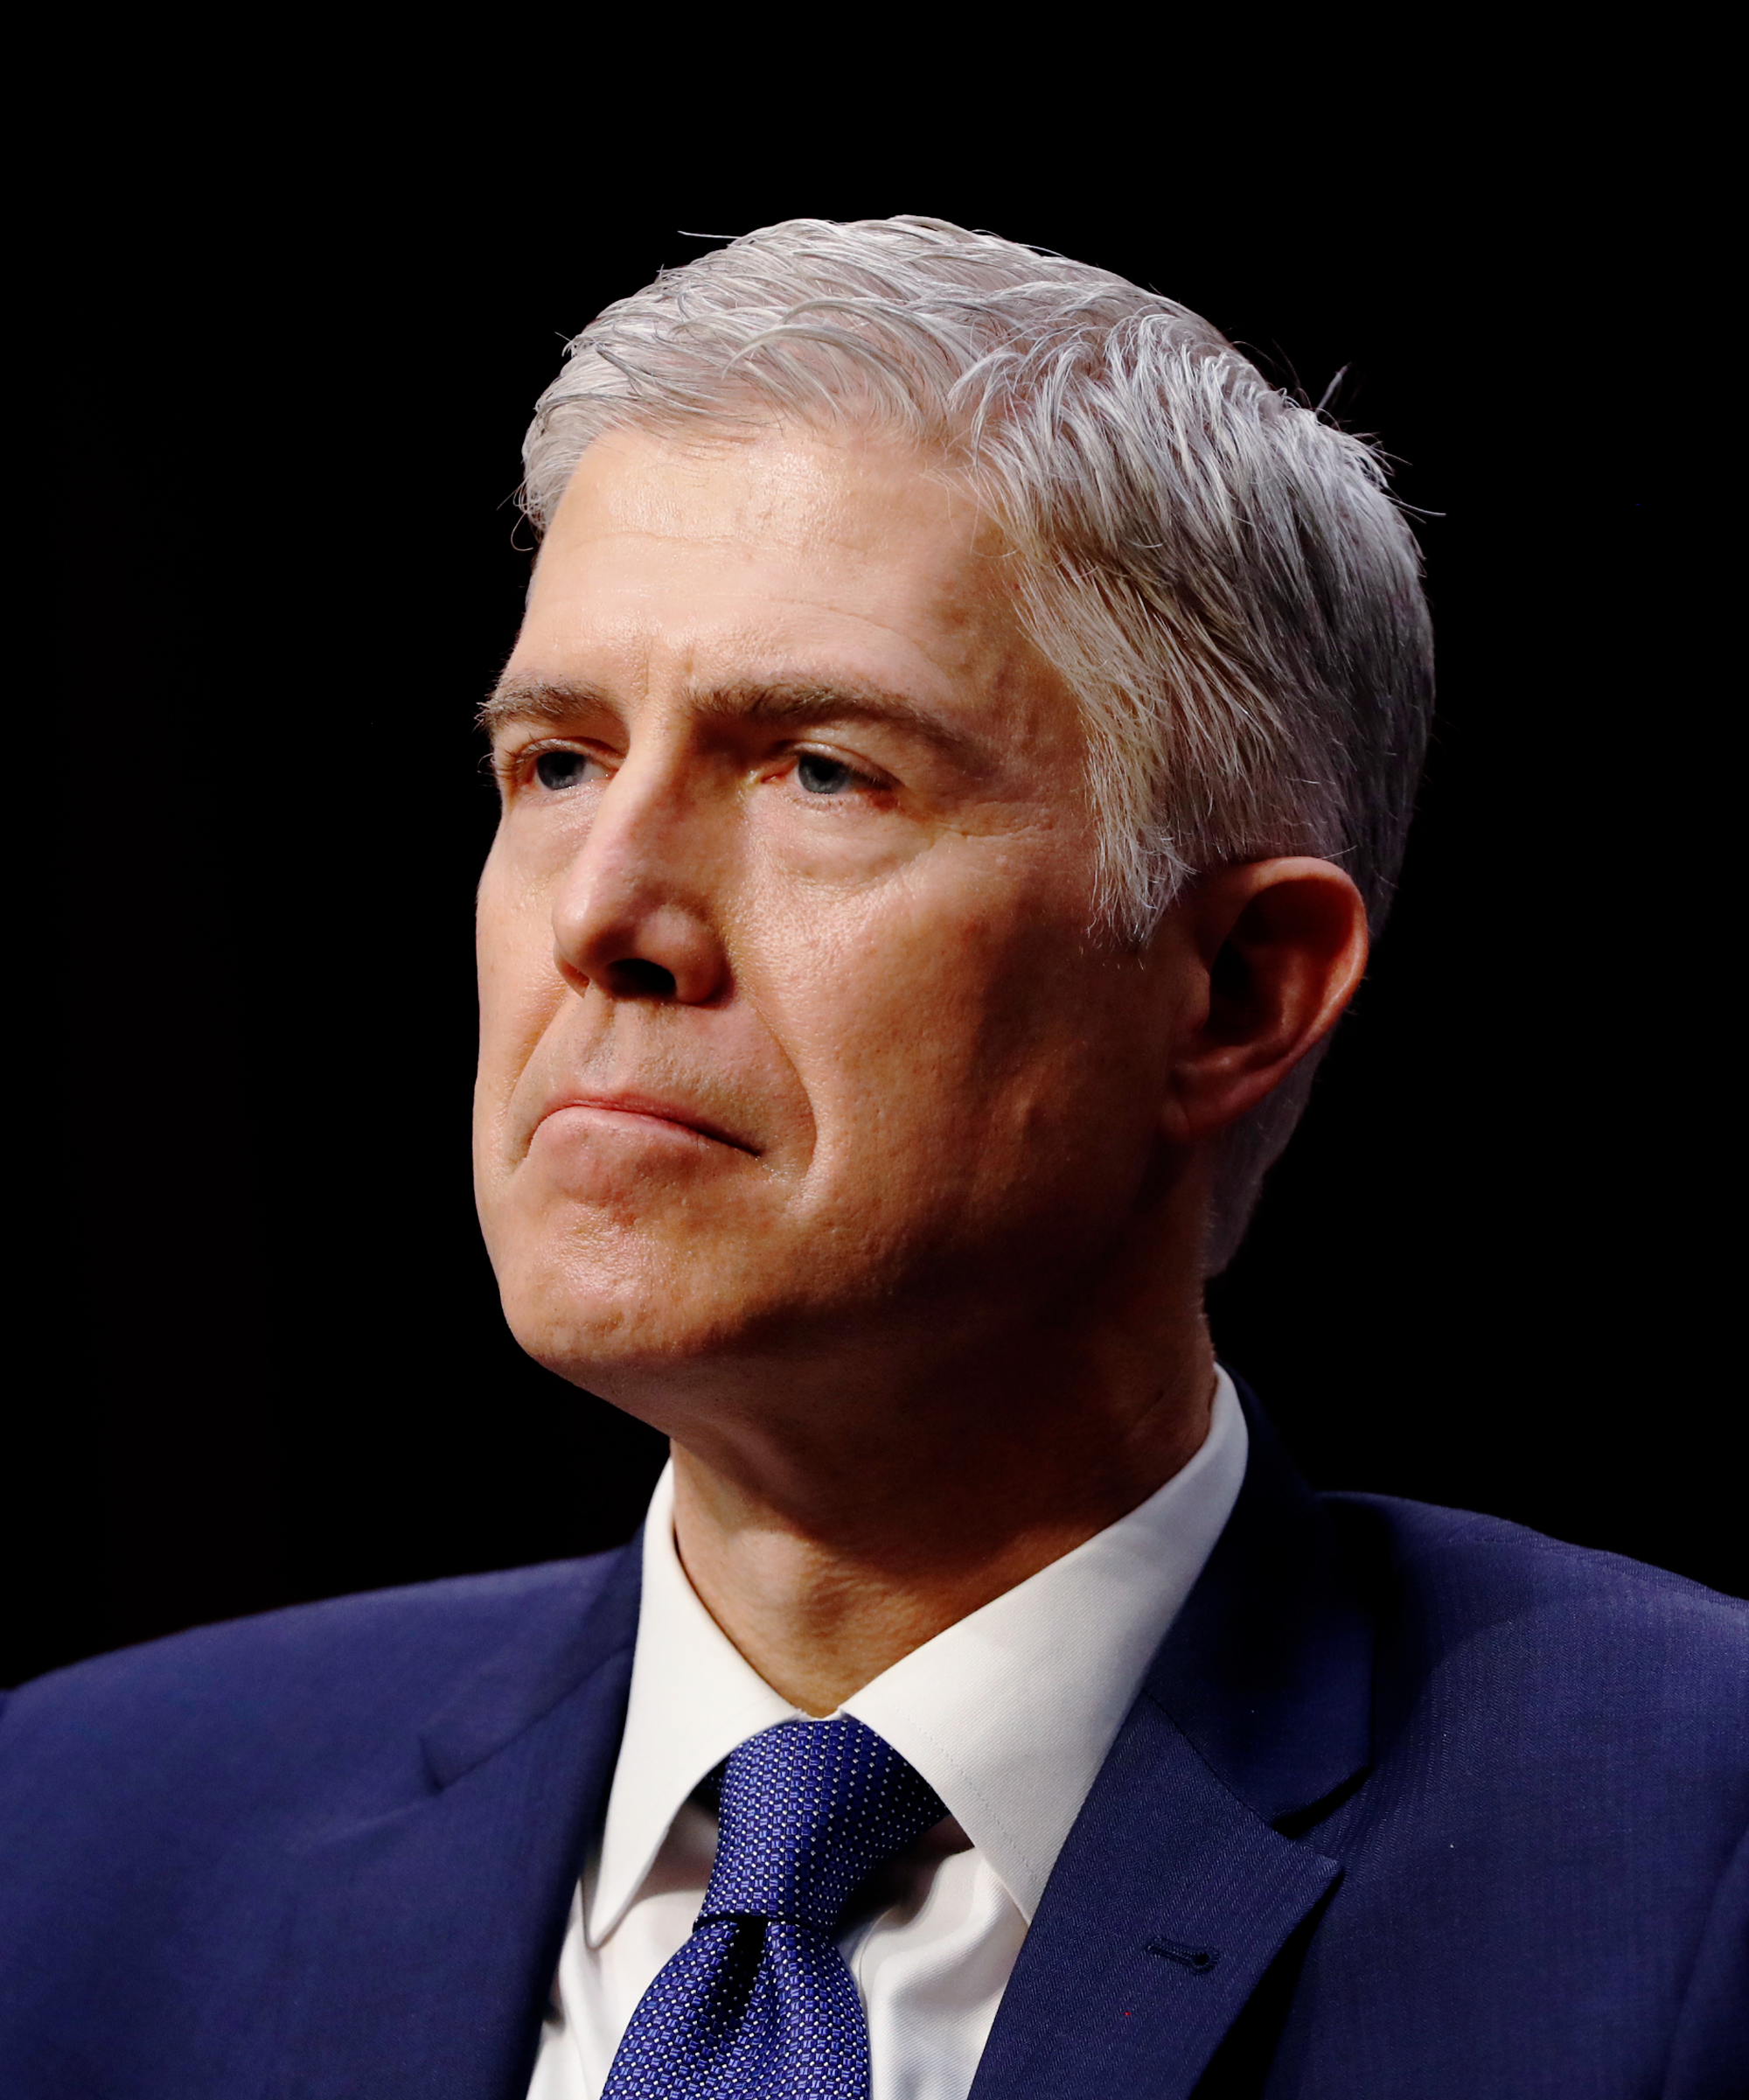 Neil Gorsuch Confirmed To Supreme Court After GOP Uses 'Nuclear Option'